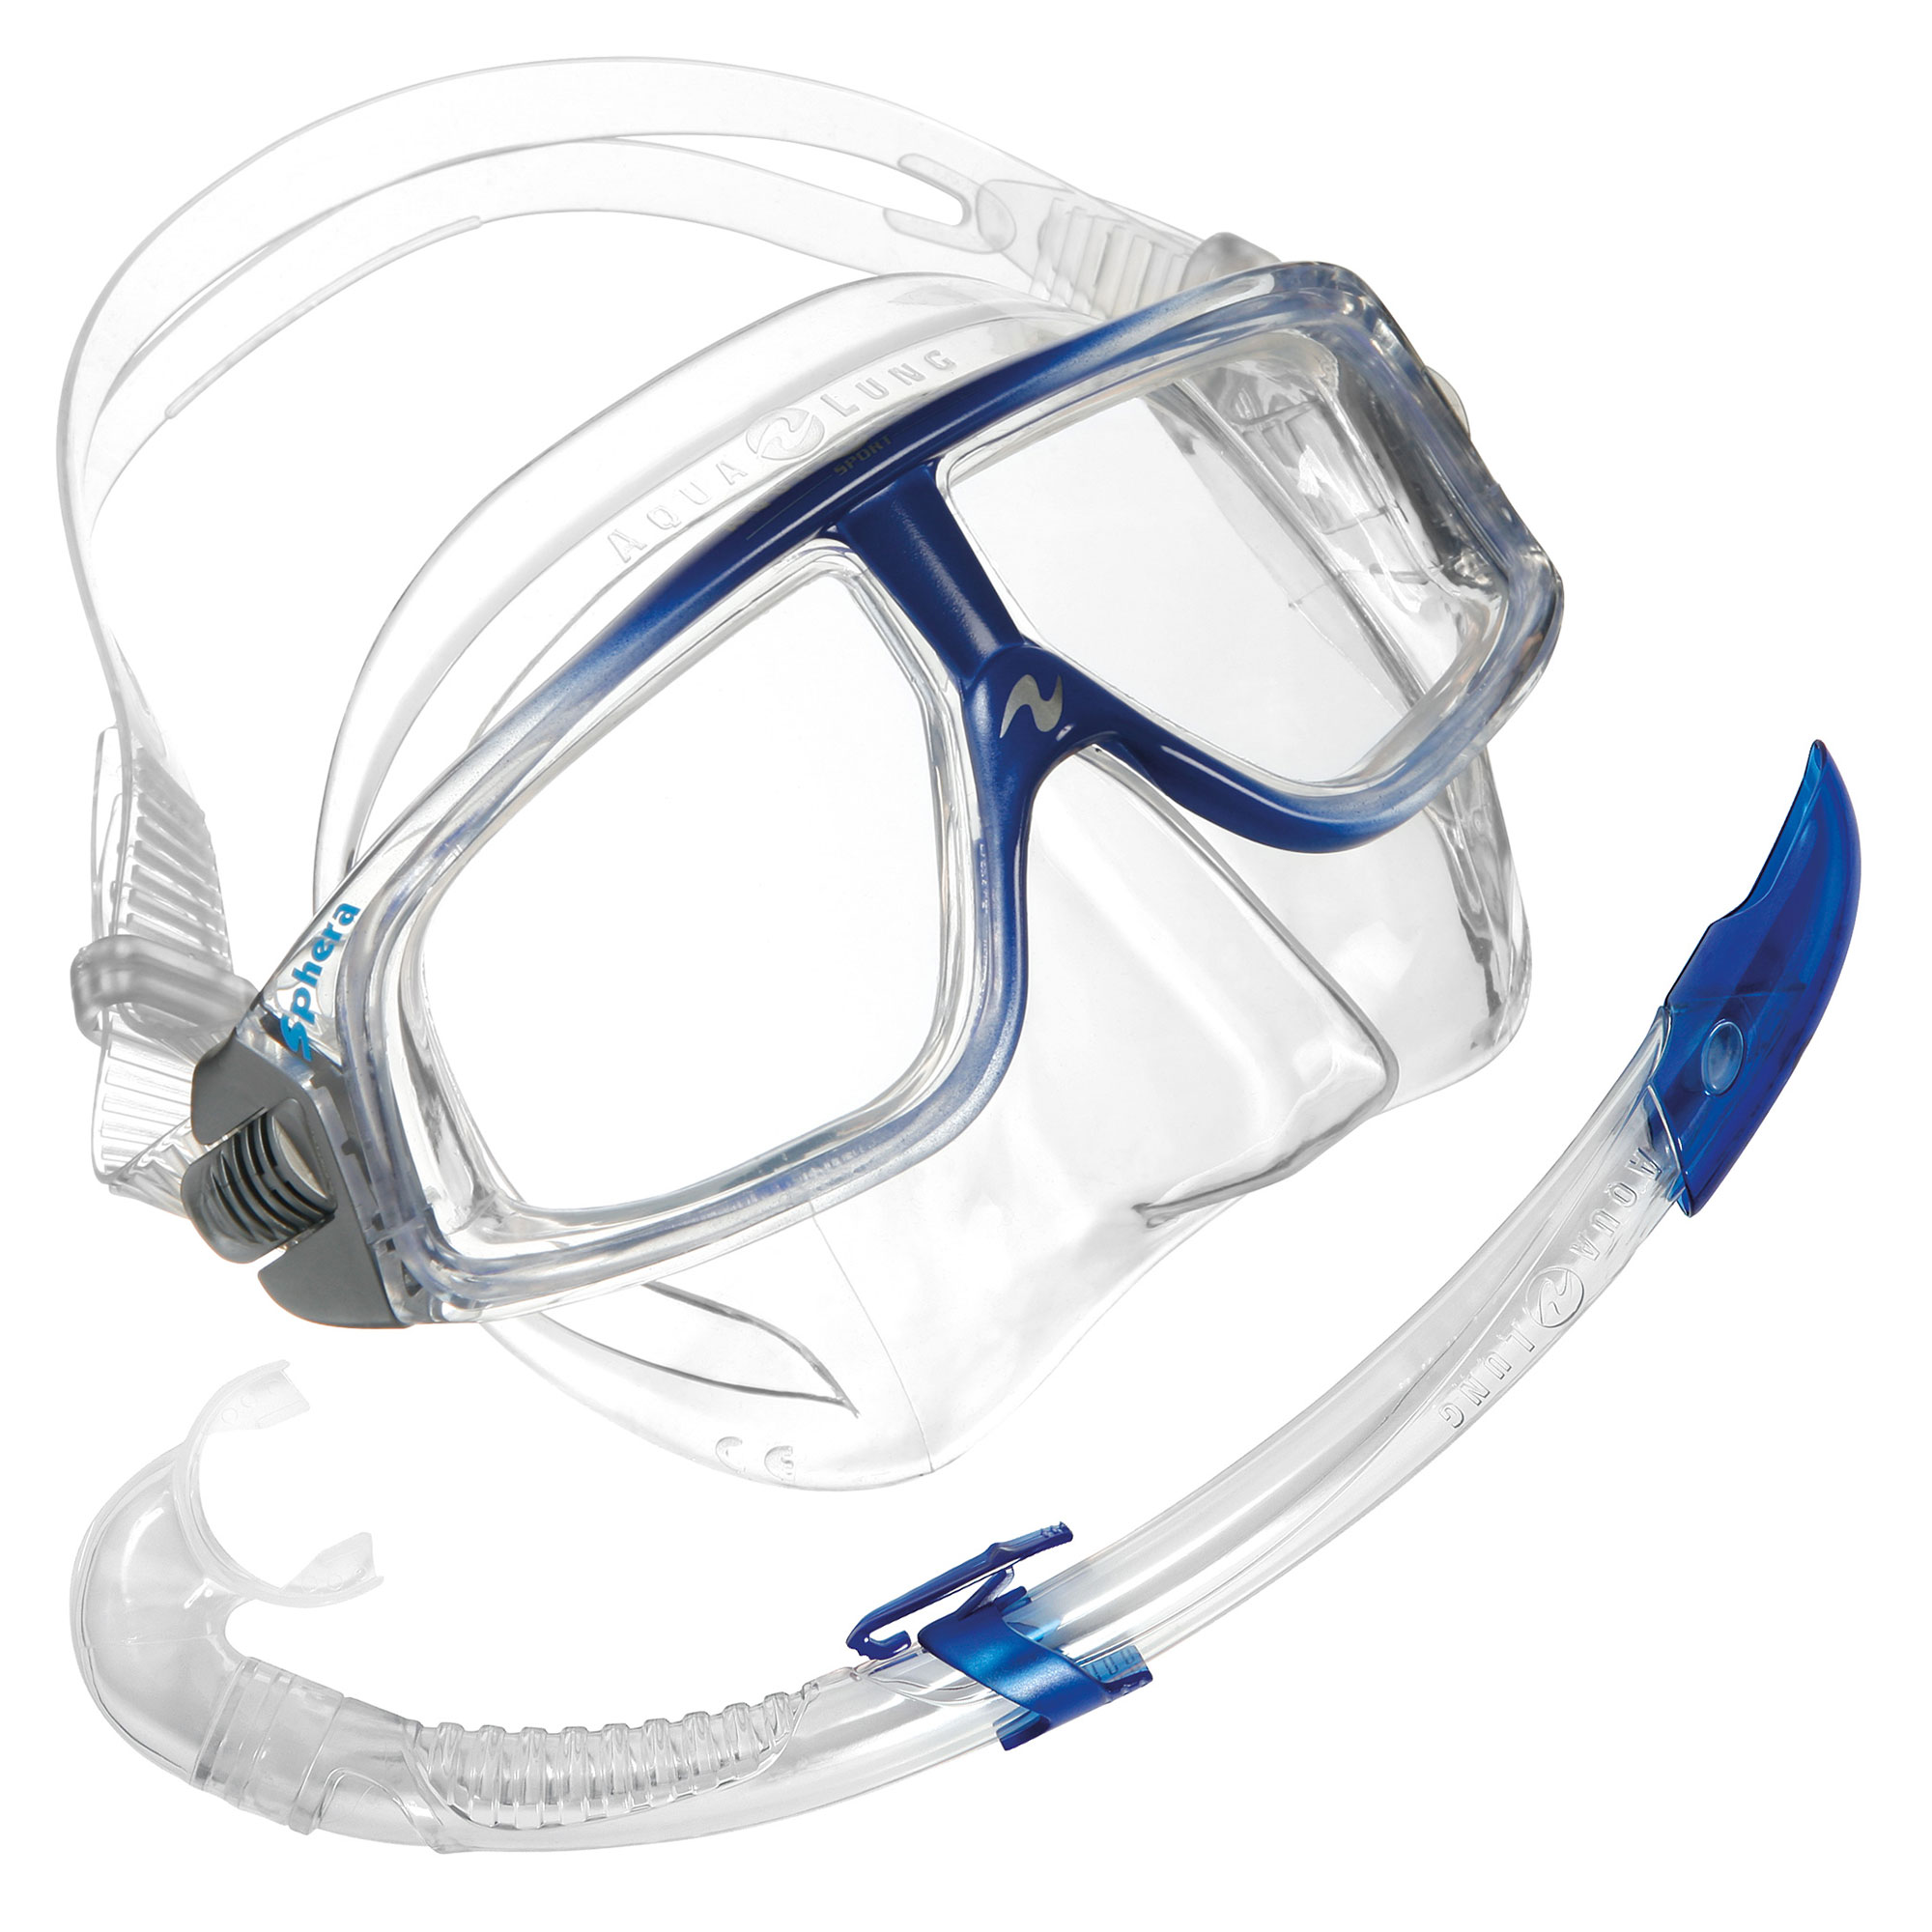 Aqua Lung Sphera LX Mask and Airflex LX Snorkel Set